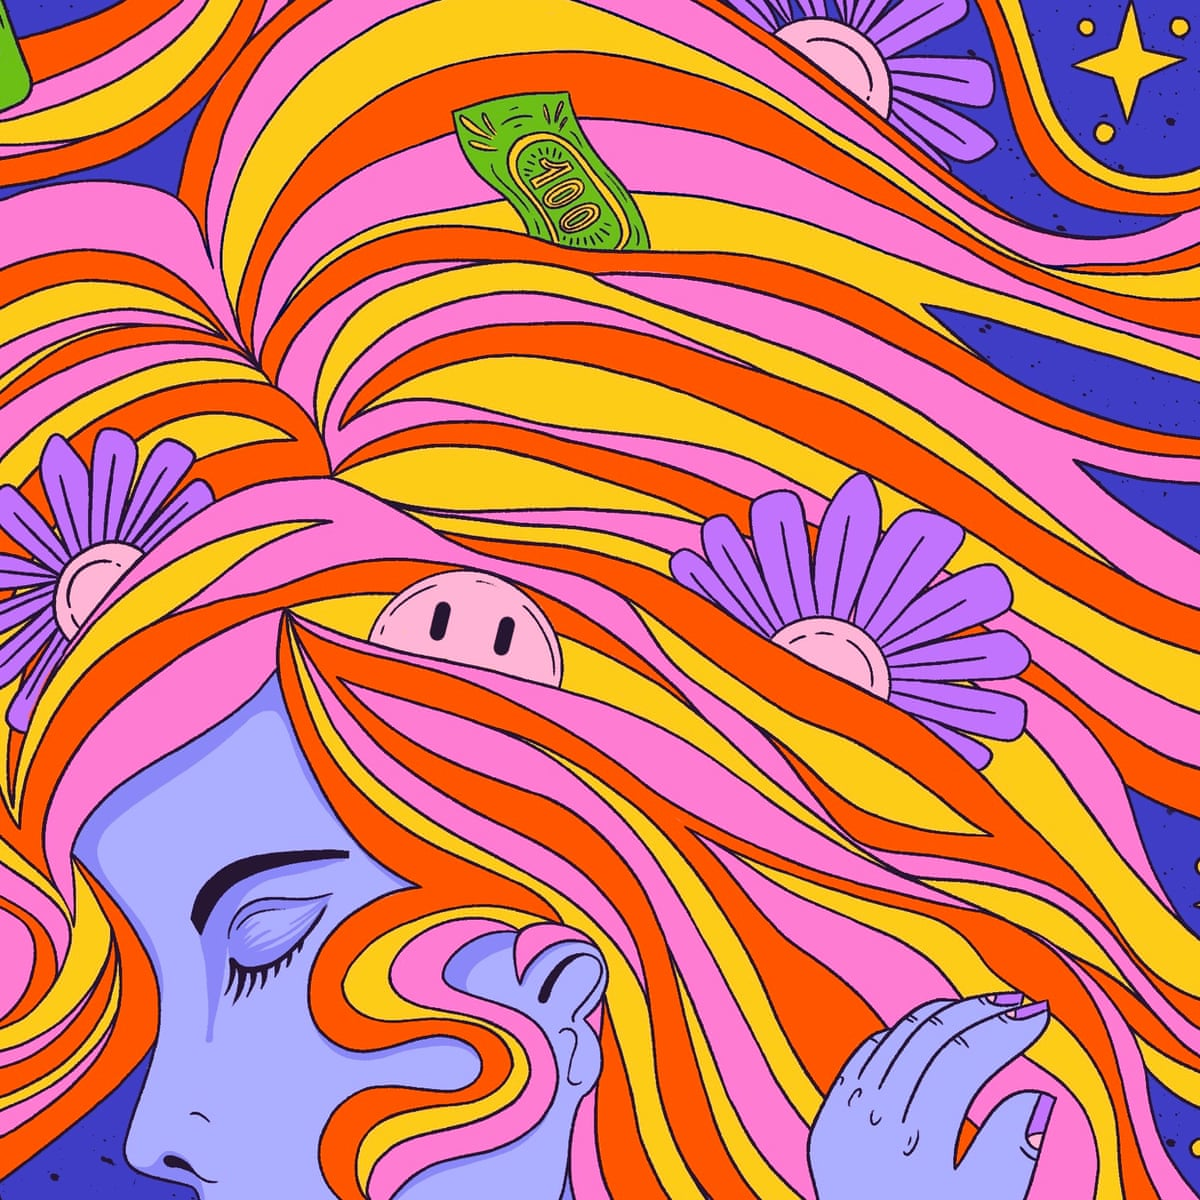 The ketamine blew my mind': can psychedelics cure addiction and depression?  | Health & wellbeing | The Guardian